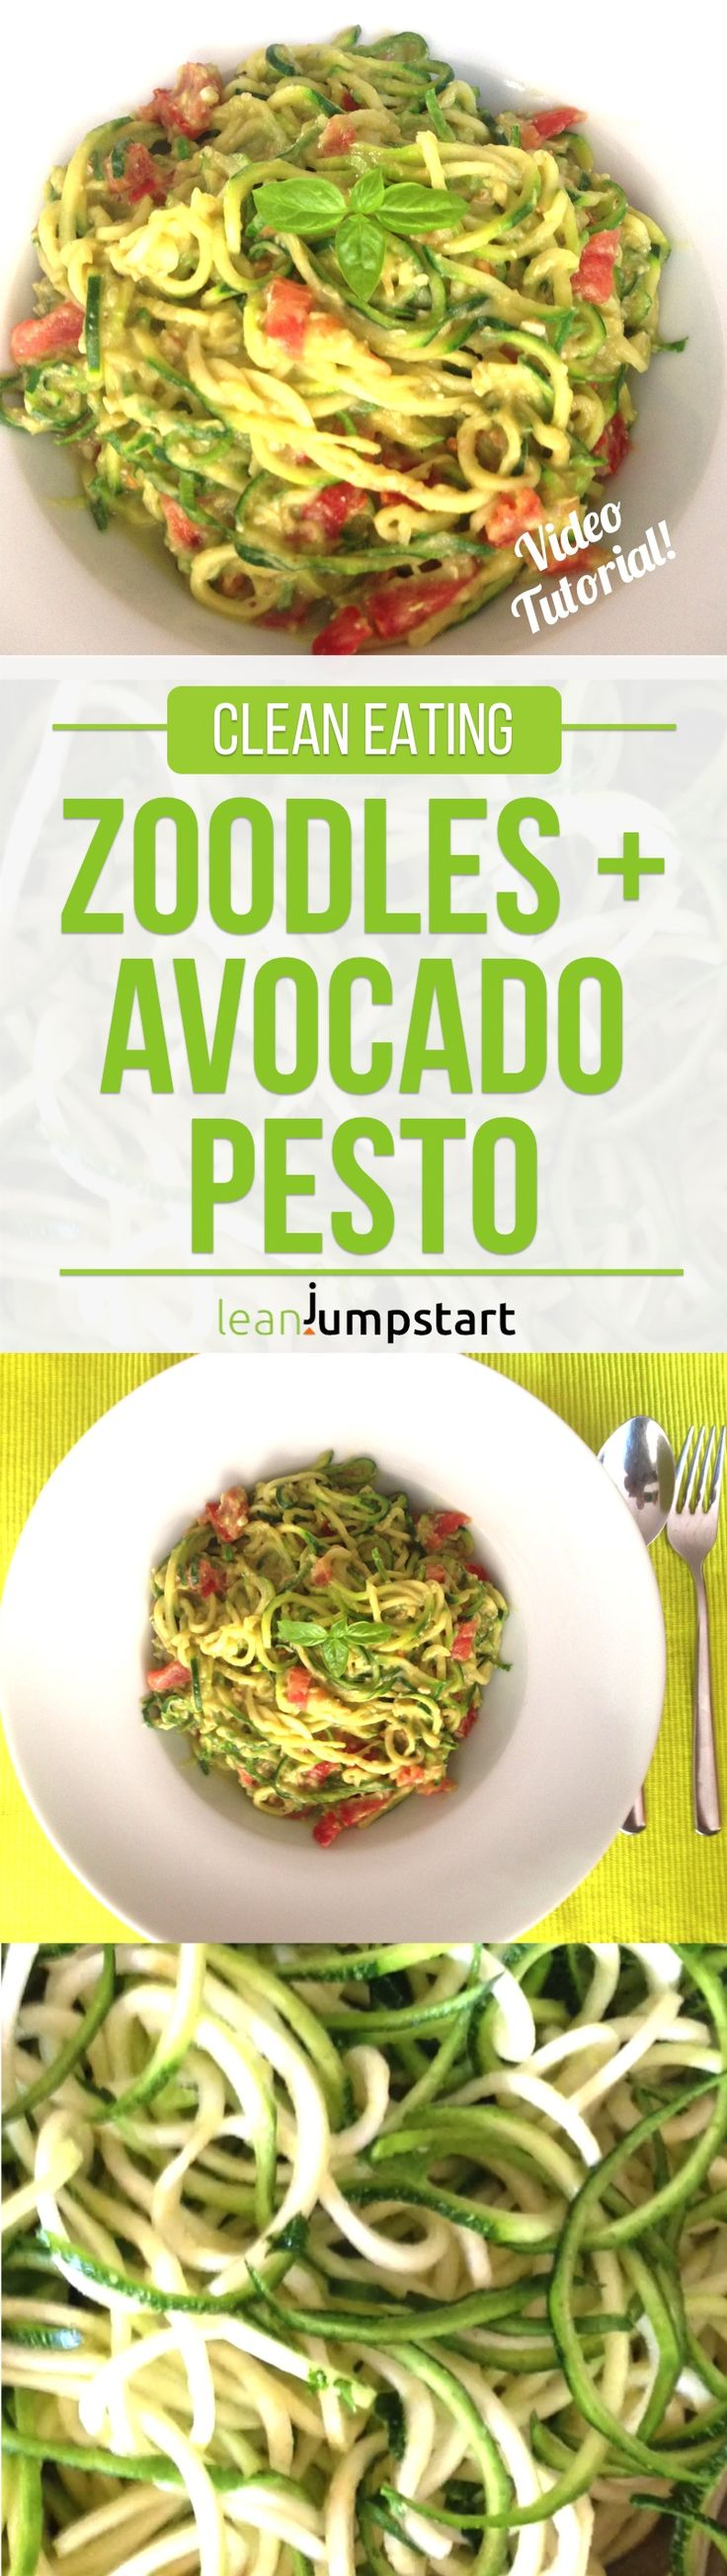 A clean eating zoodles recipe with spiralized zucchinis and avocado pesto for more creativity in your healthy kitchen. Click through now!